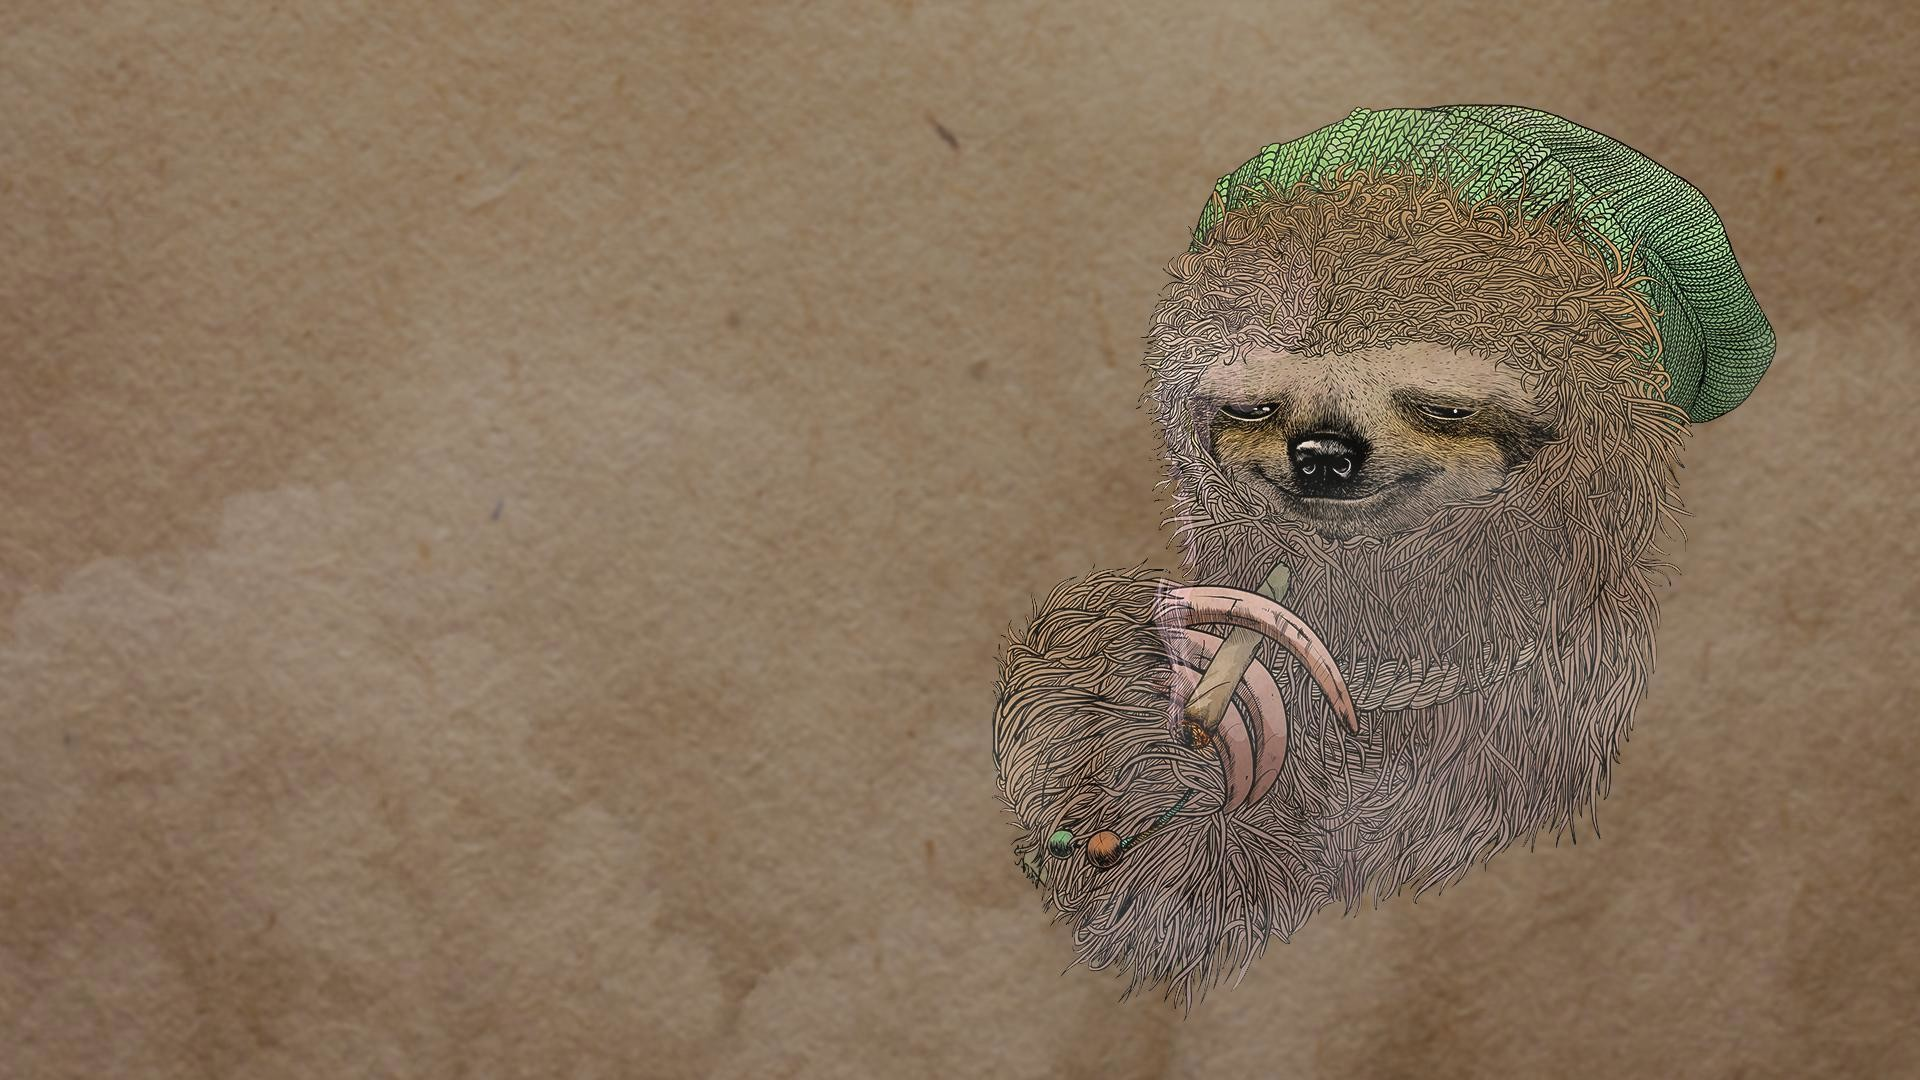 1920x1080 Sloth-Image-Download-Free